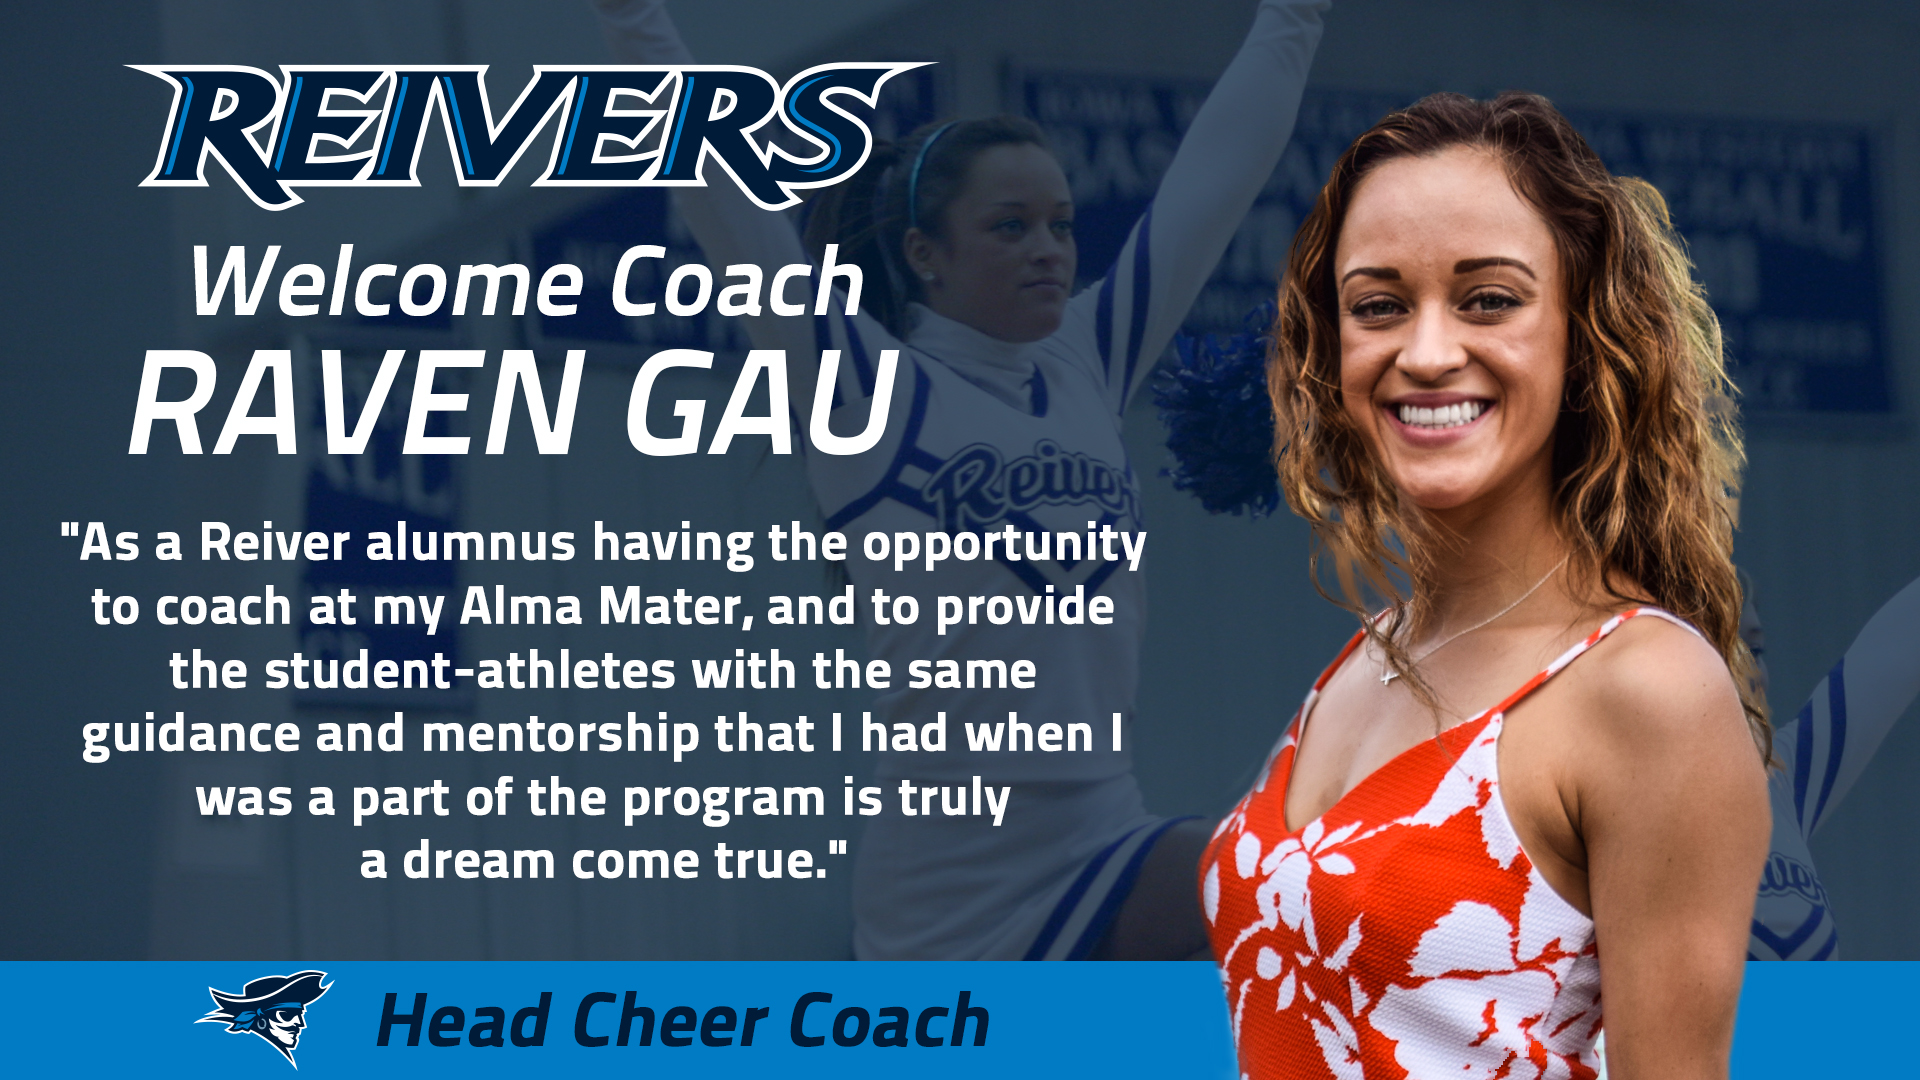 Reivers welcome back Gau as new leader of Cheer Squad!